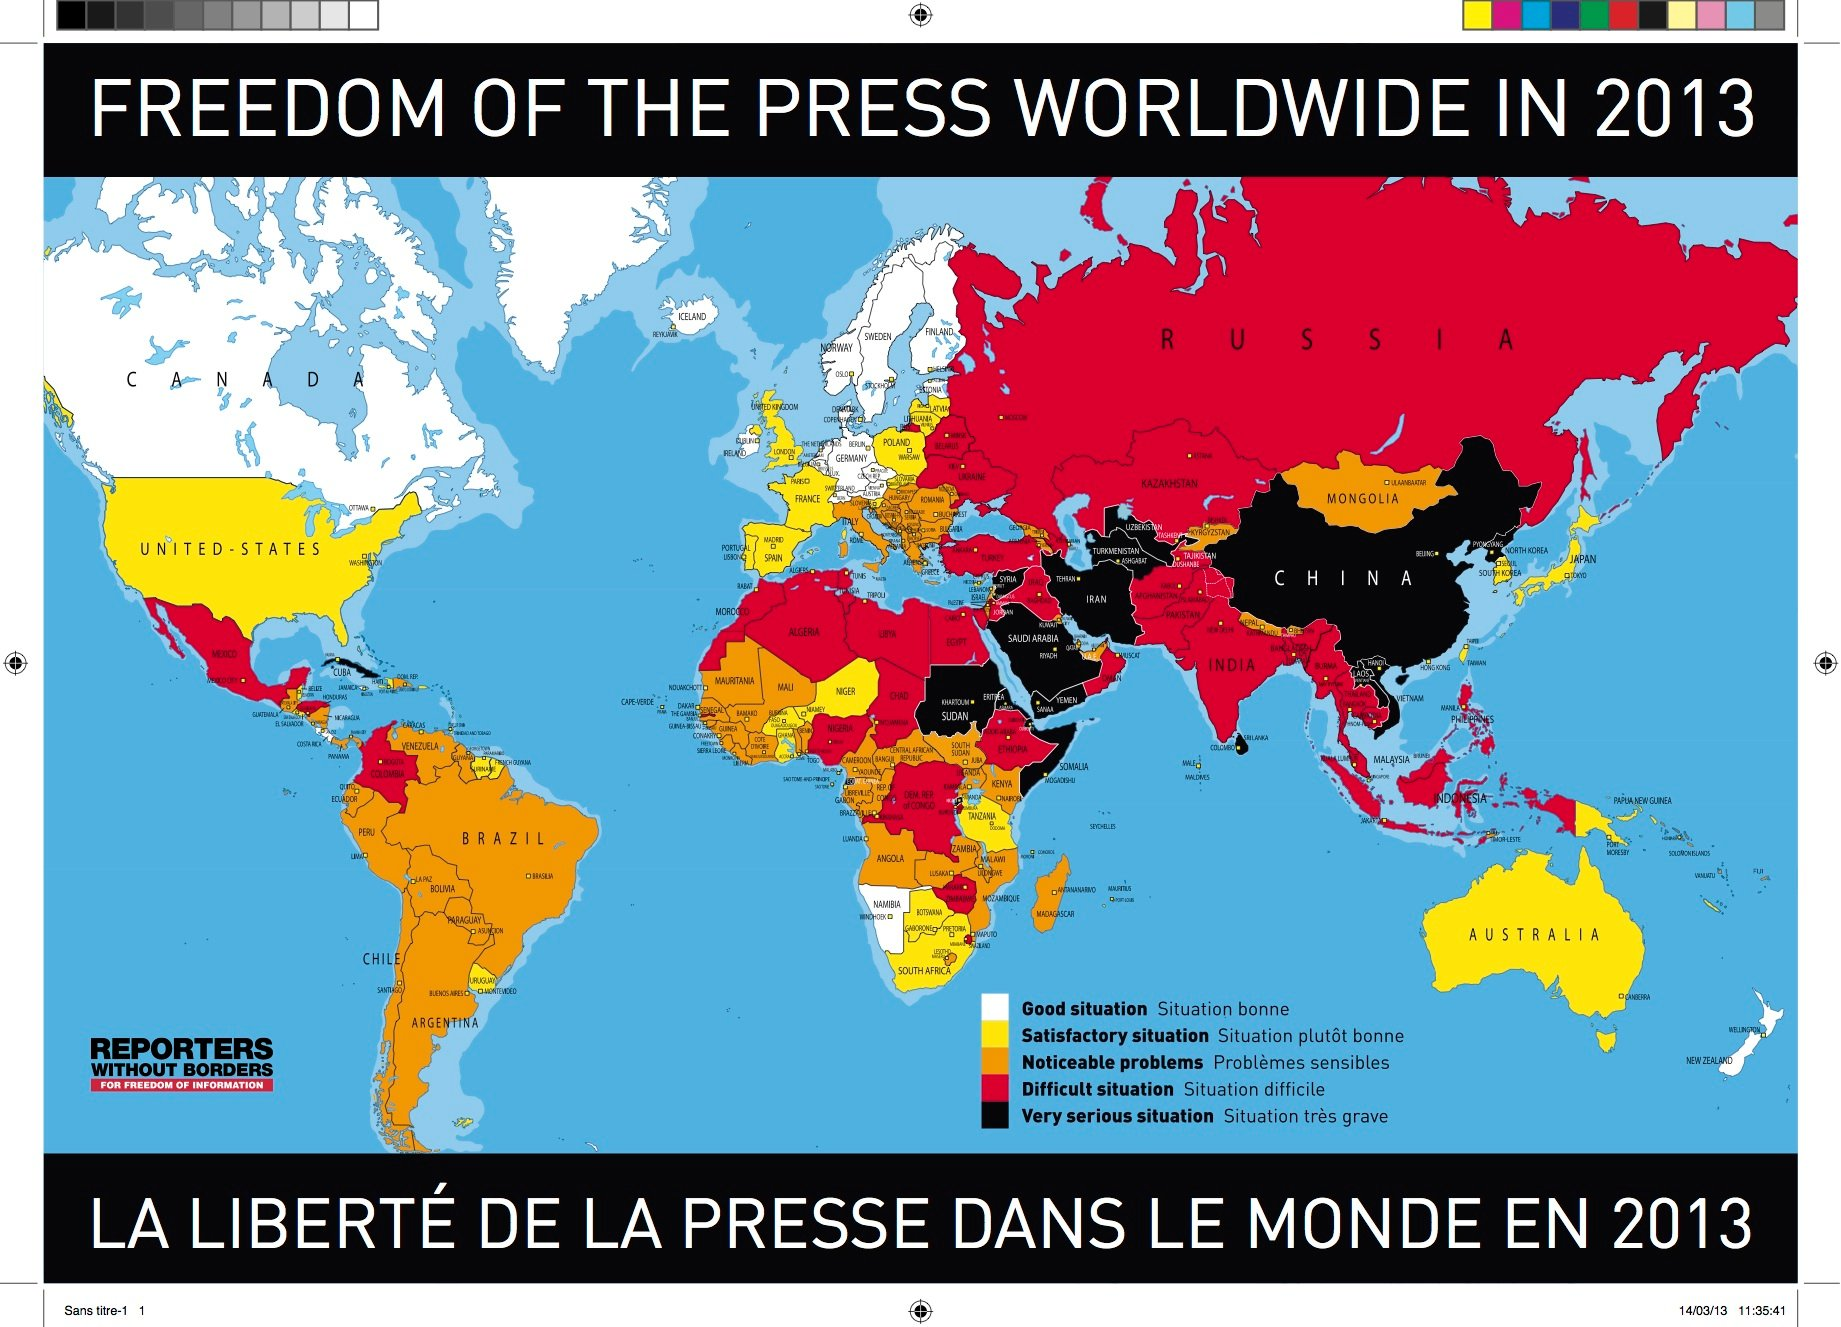 RSF WORLD PRESS FREEDOM MAP